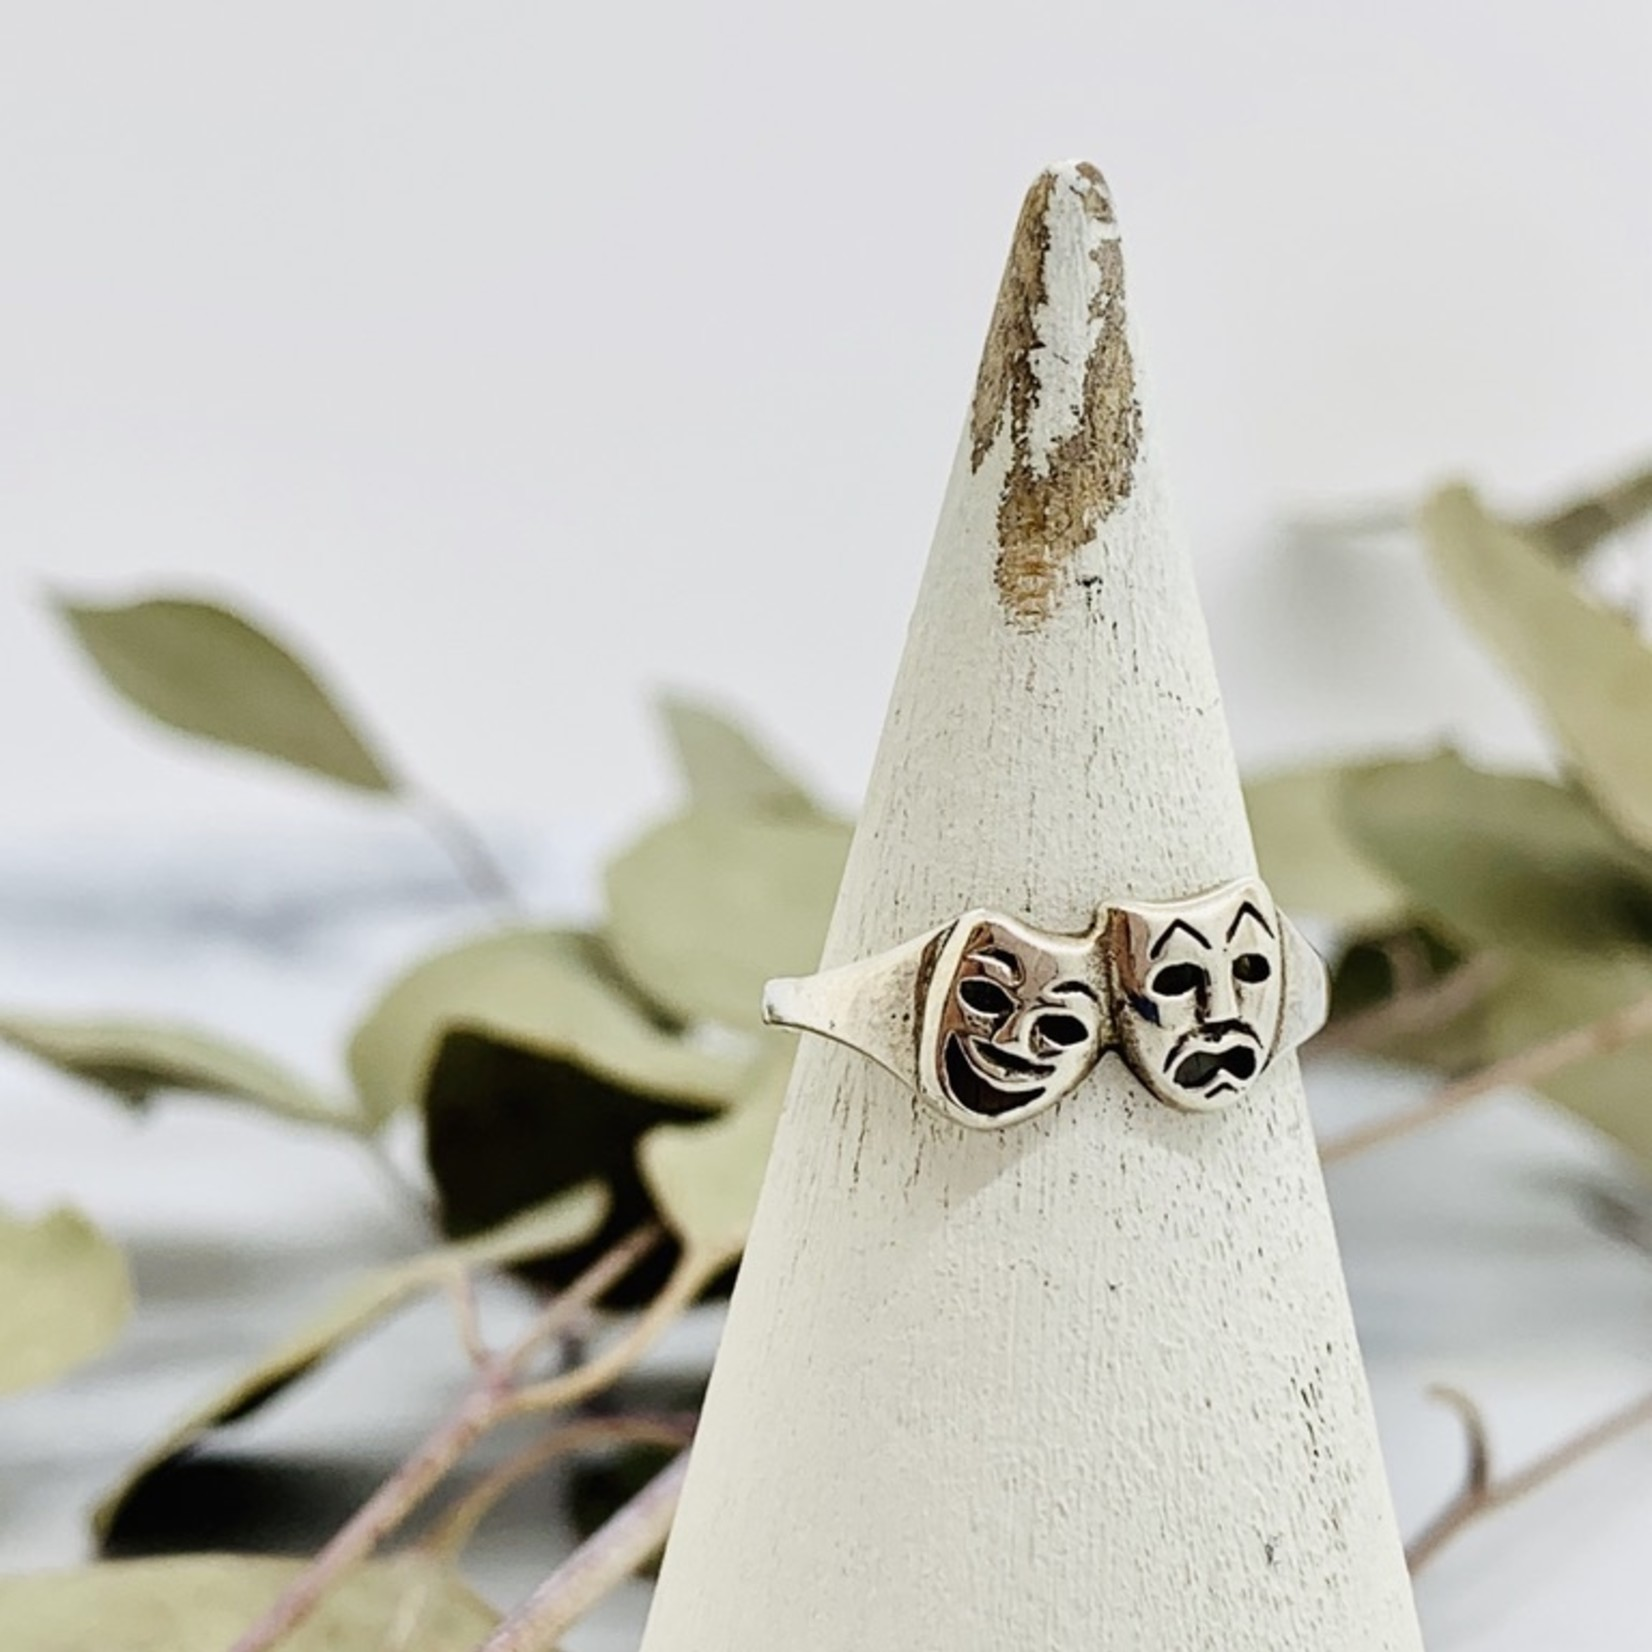 Silver Comedy Tragedy Ring